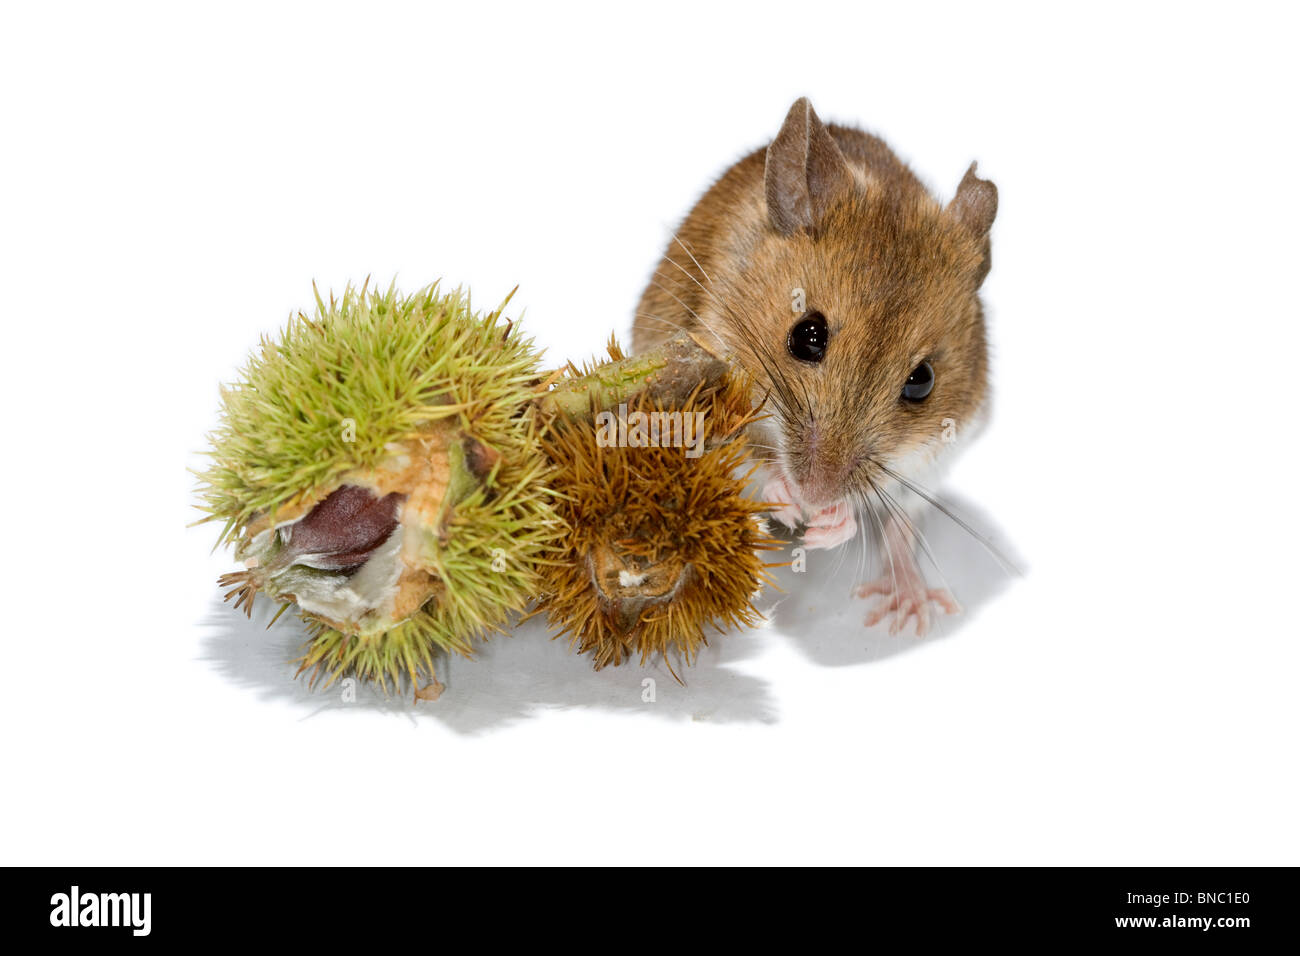 Cutout of Wood mouse and sweet chestnut fruit. - Stock Image